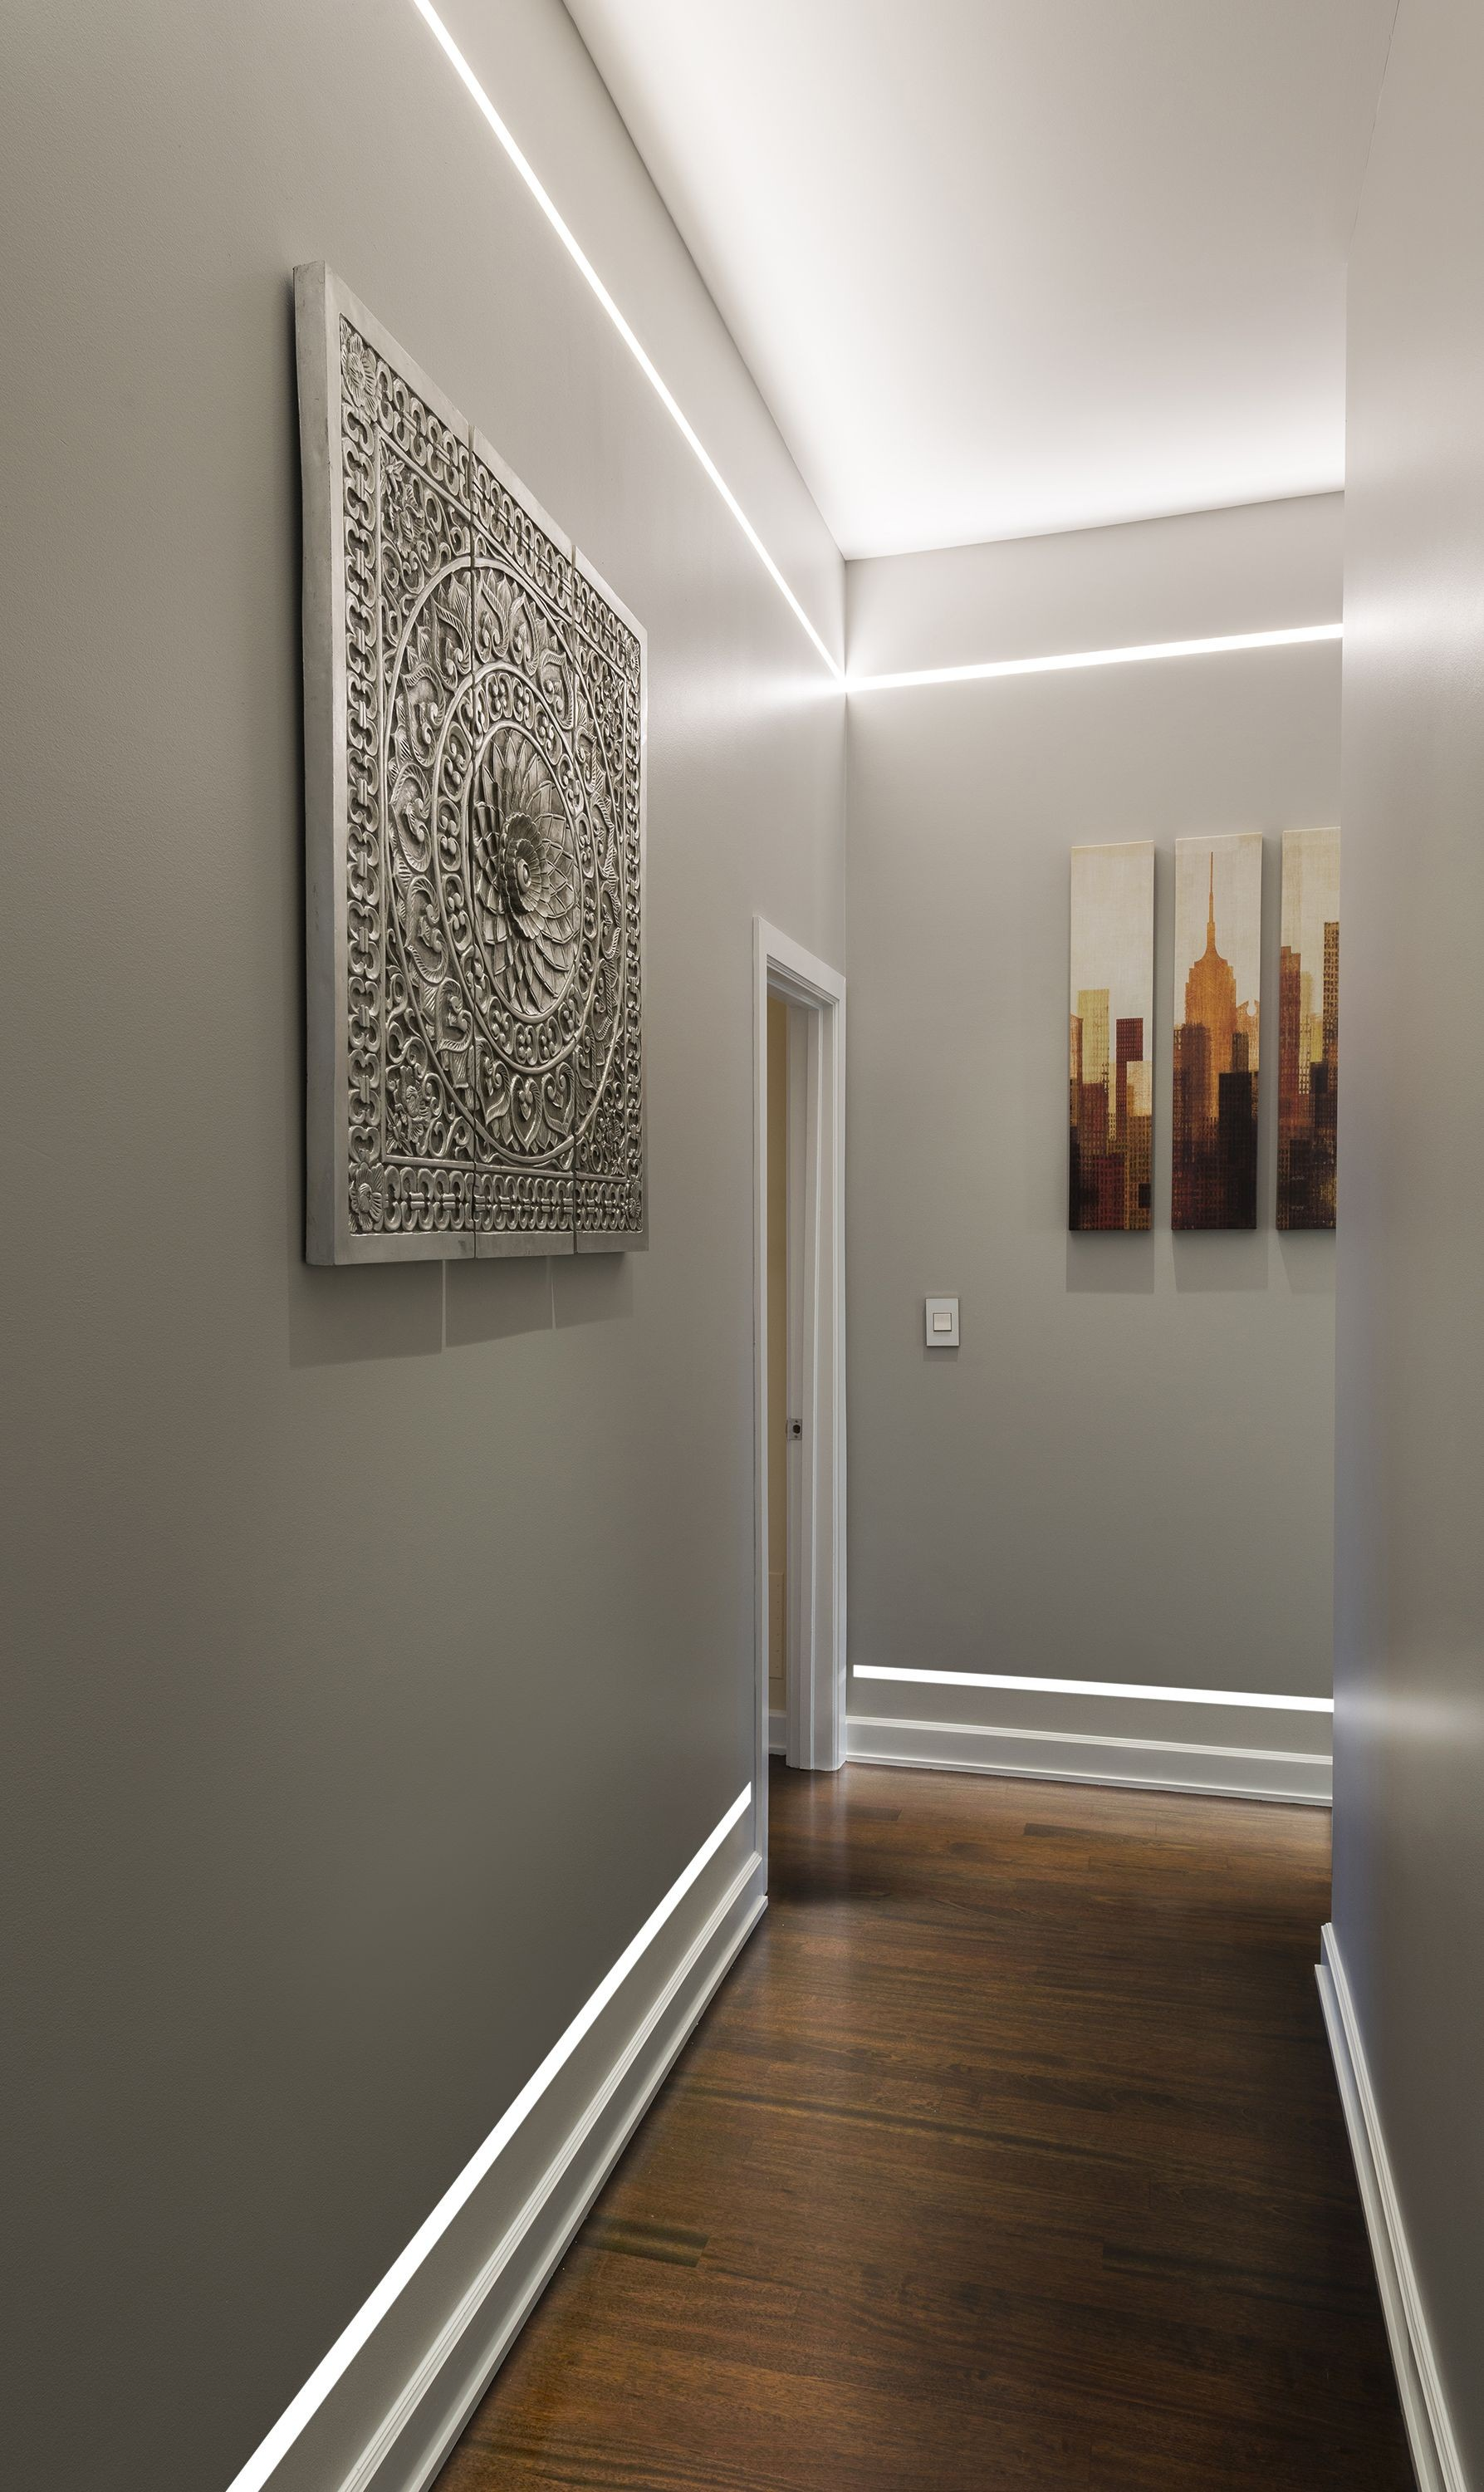 Illuminate a hallway without ceiling fixtures or wall sconces using Reveal plaster in LED system by Pure Lighting